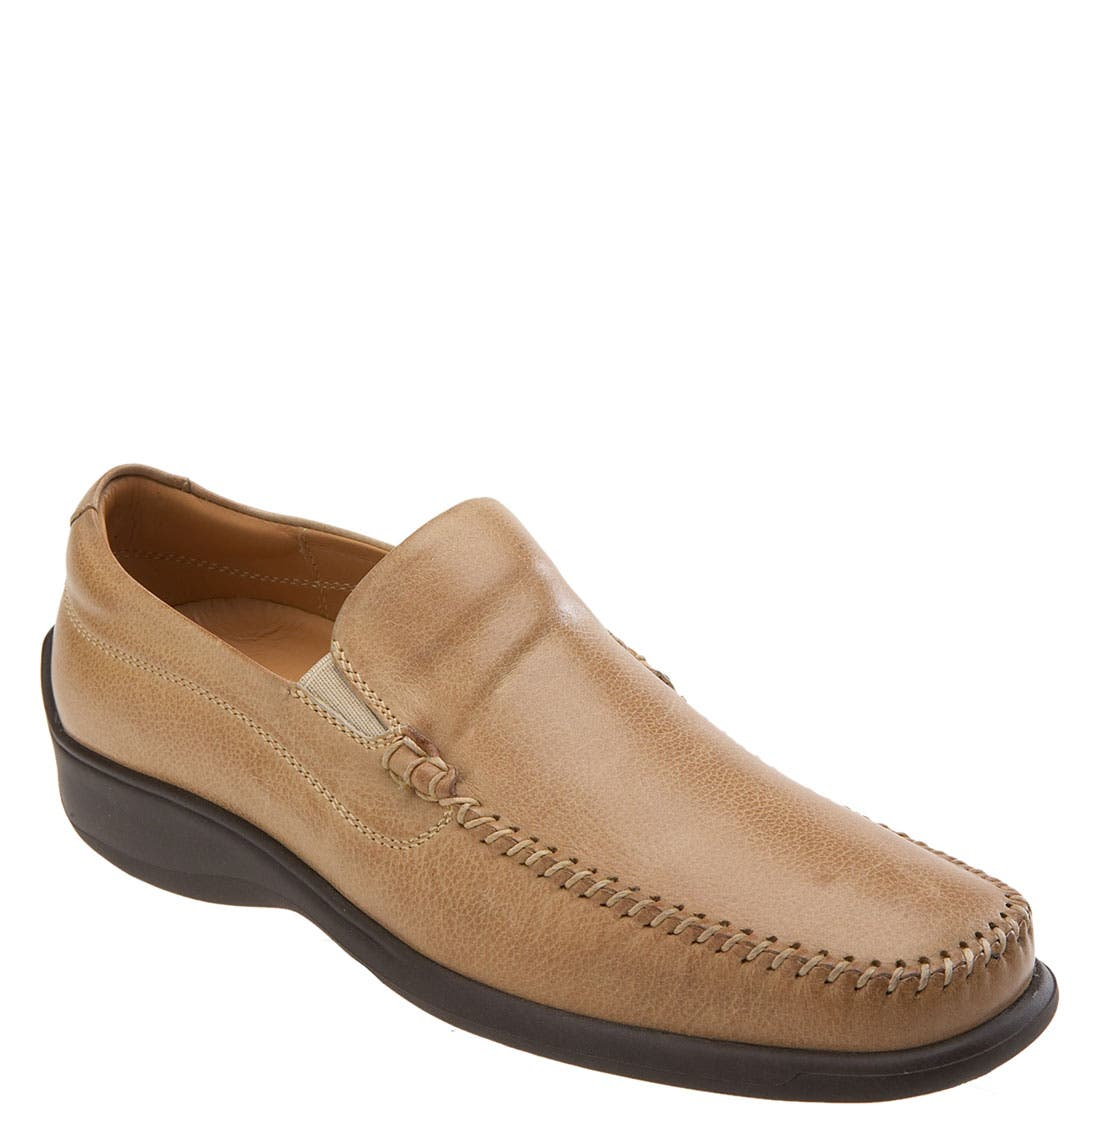 Main Image - Neil M 'Rome' Loafer